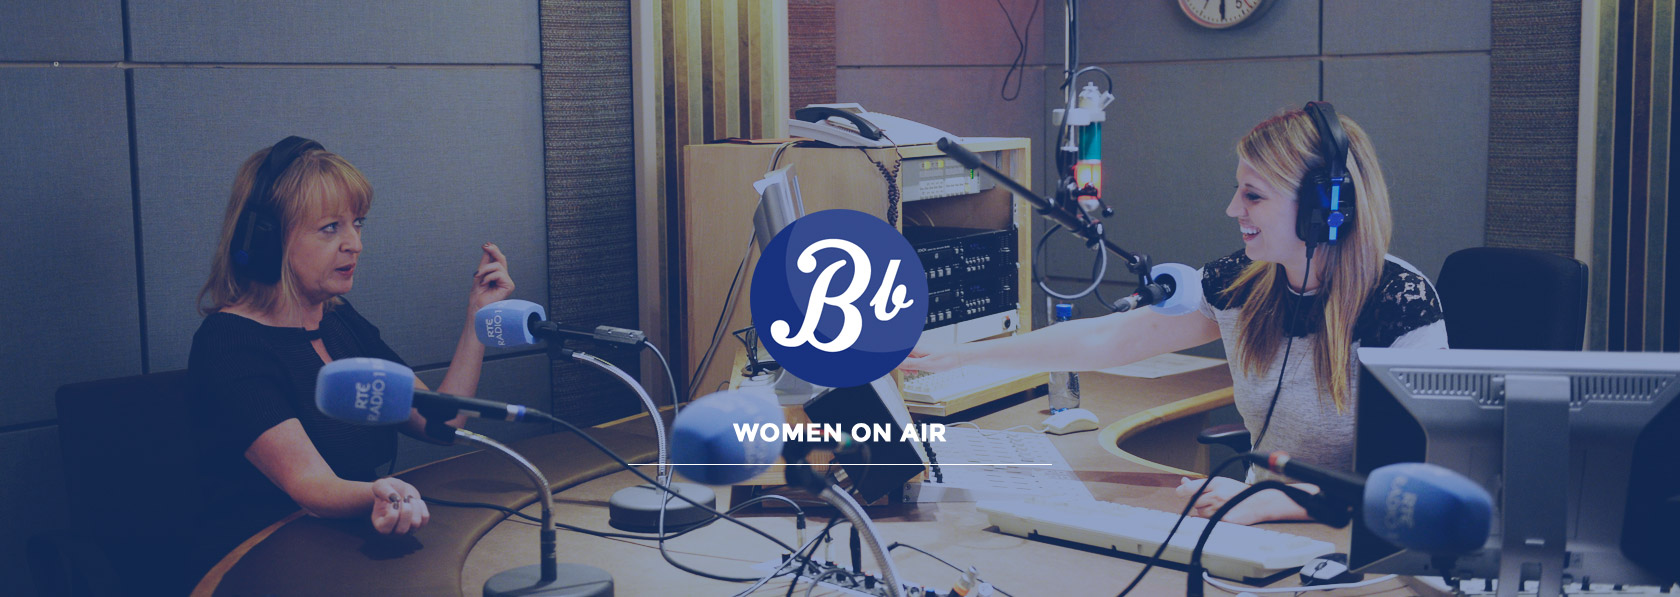 Women on Air